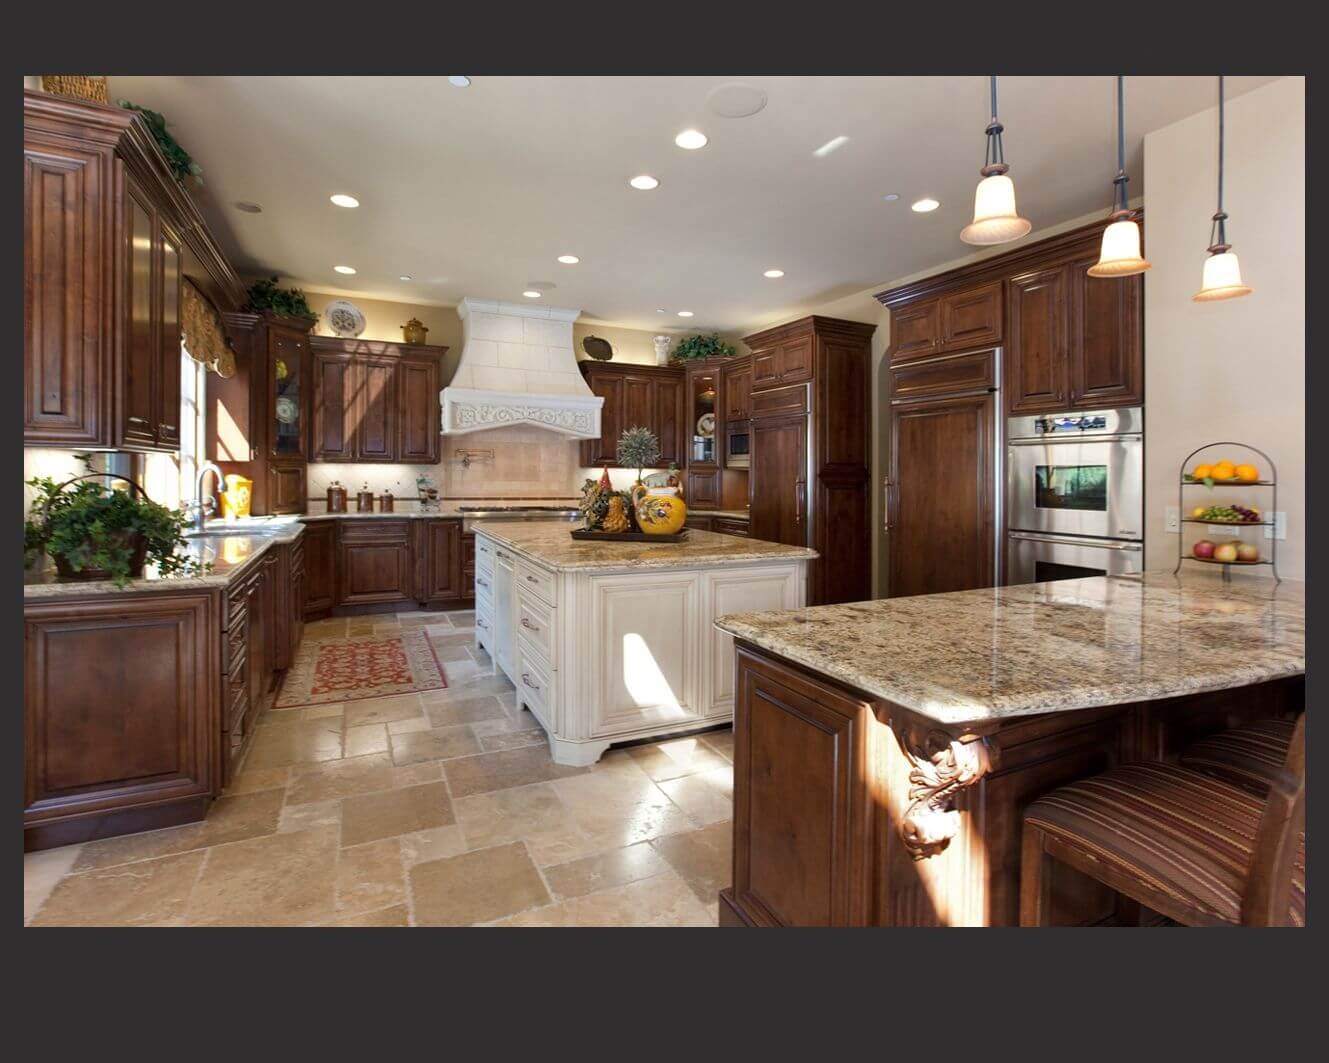 Wood Kitchen Countertops Black Cabinets 52 Dark Kitchens With Dark Wood And Black Kitchen Cabinets